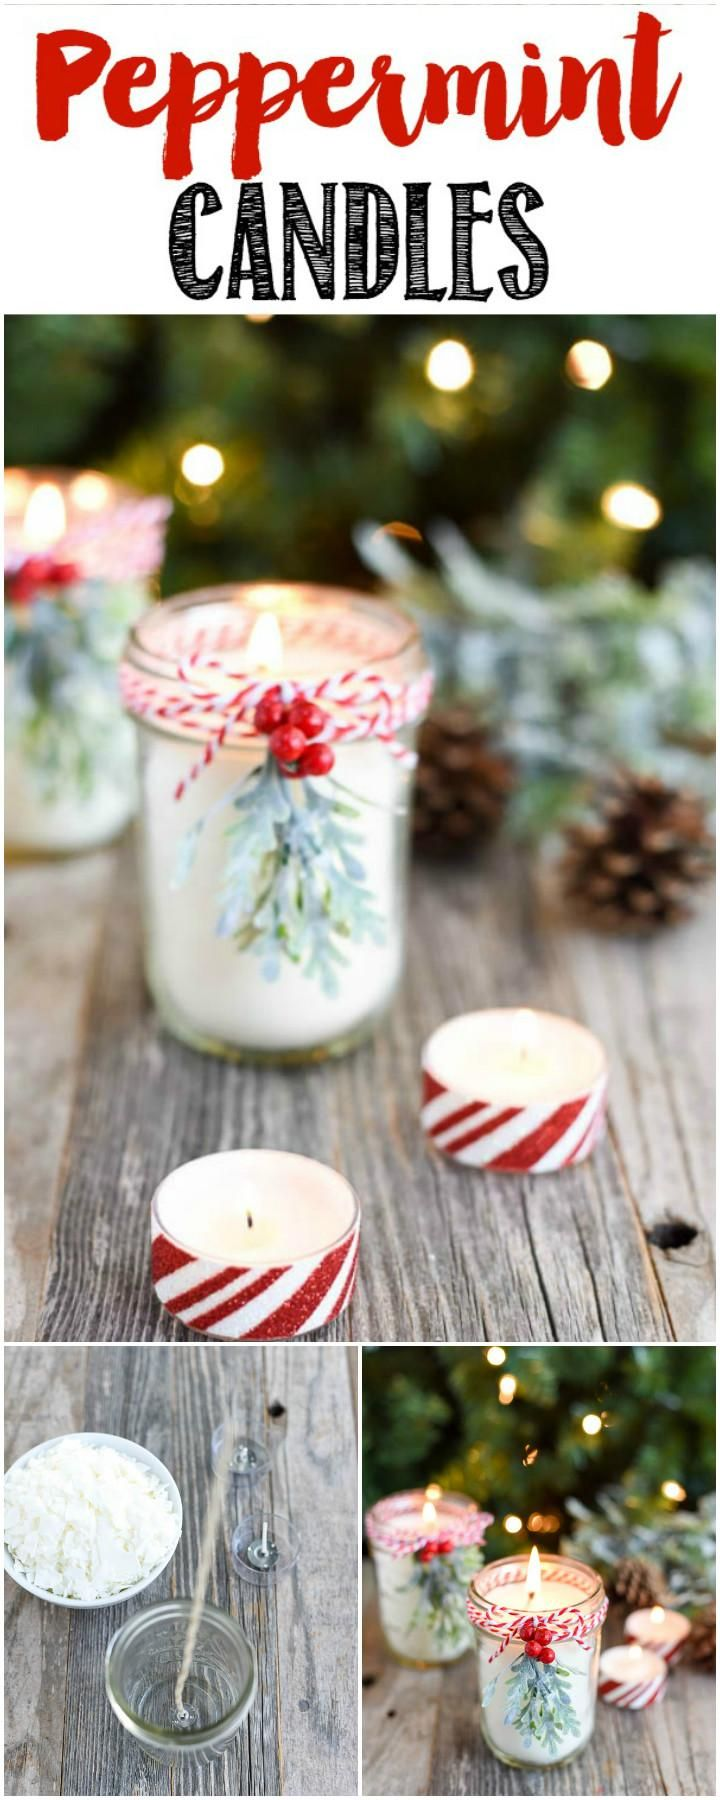 160+ DIY Mason Jar Crafts and Gift Ideas | Pinterest | Mason jar ...